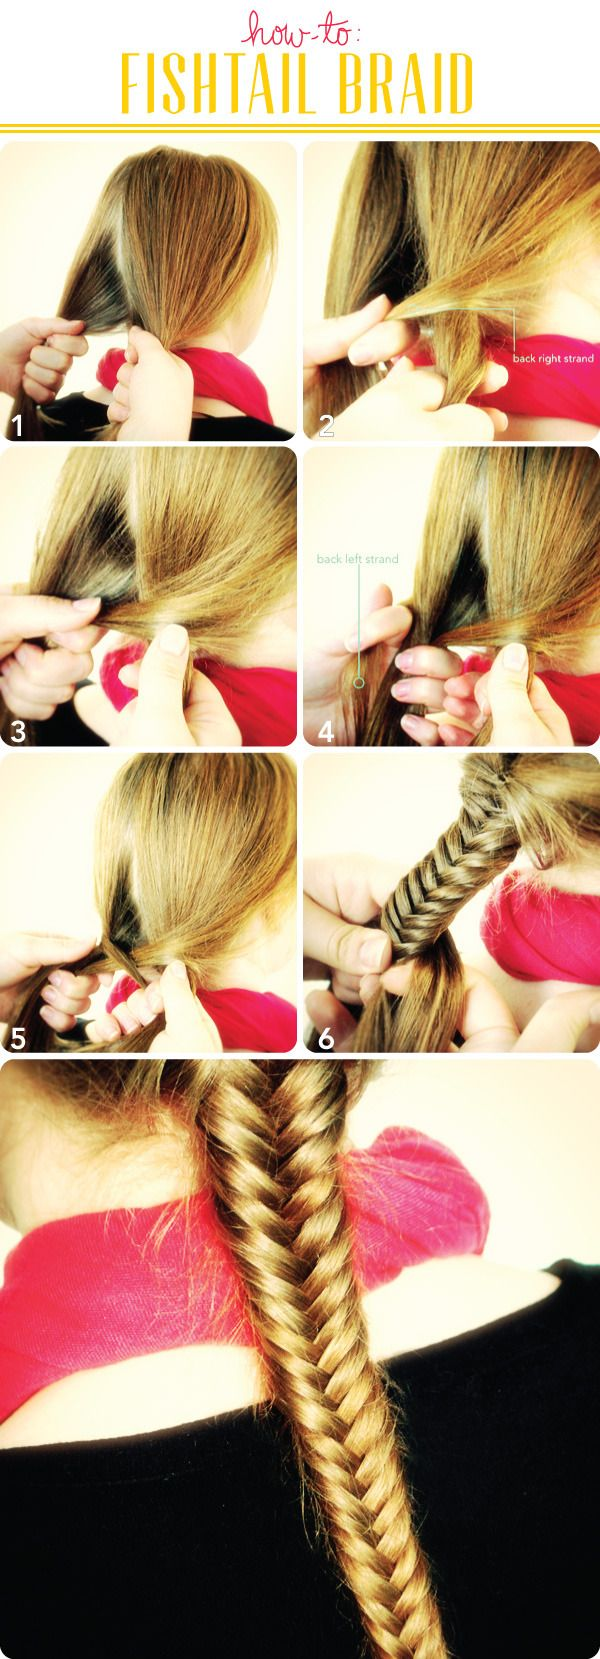 fishbone braid instructions - photo #34